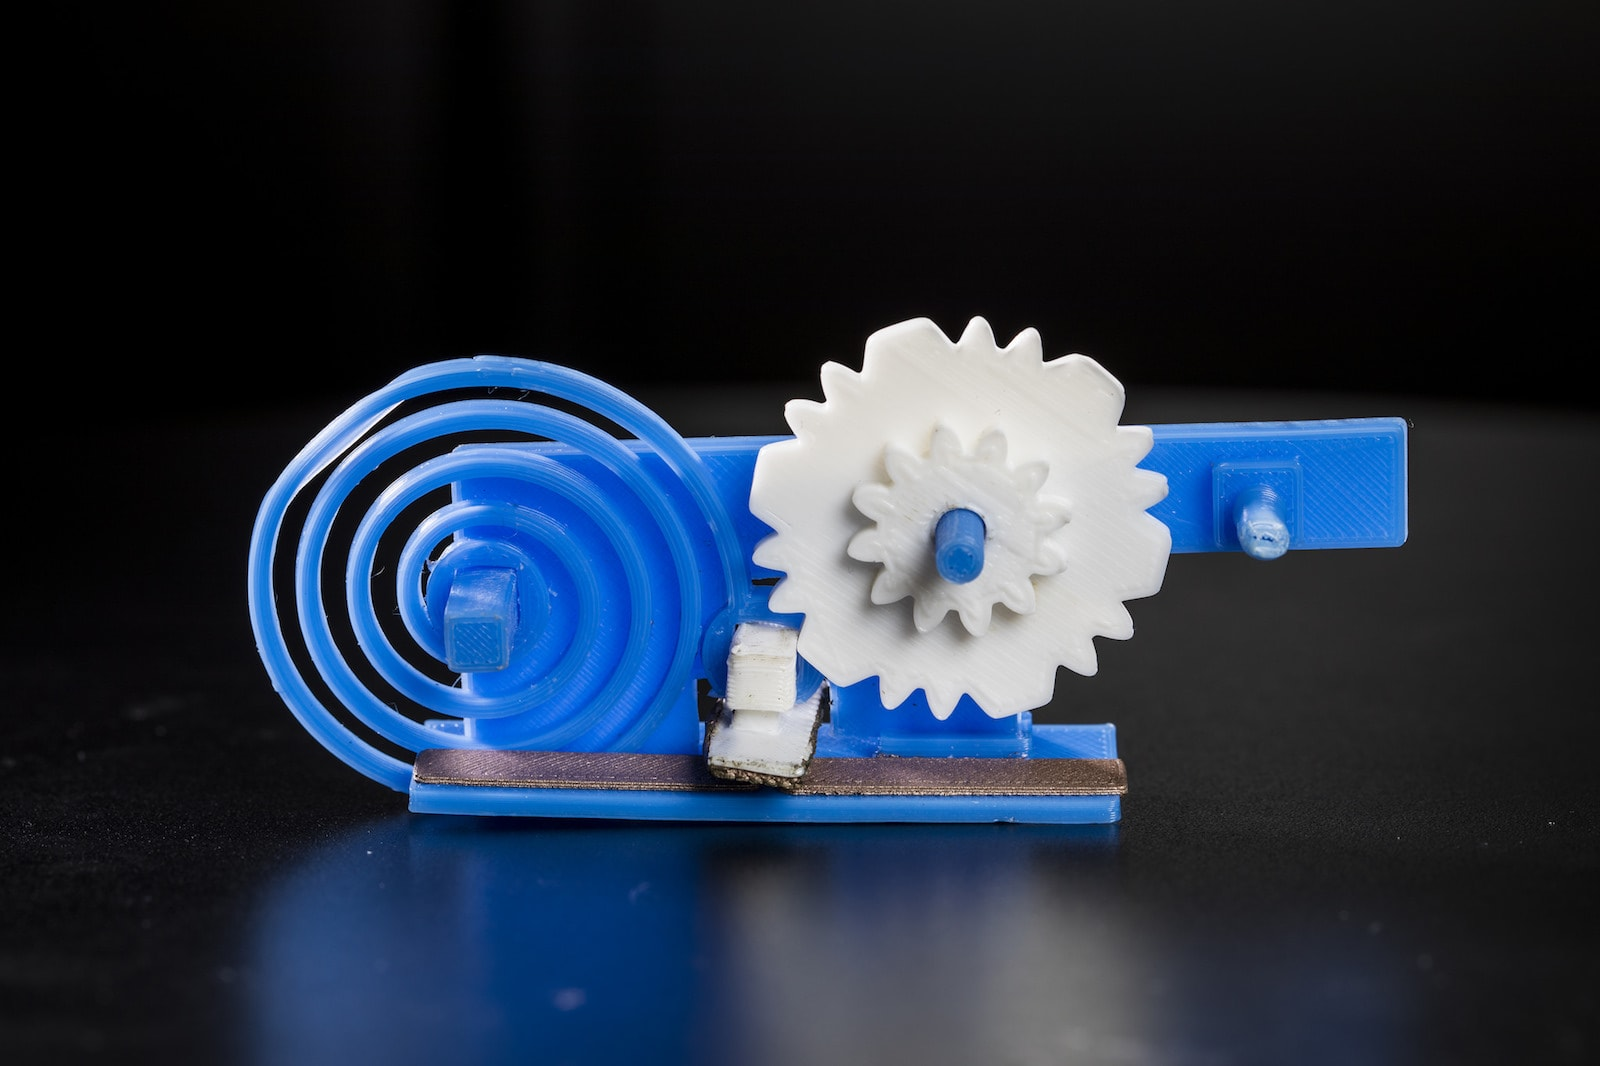 Researchers 3D-print WiFi-connected objects that don't need power